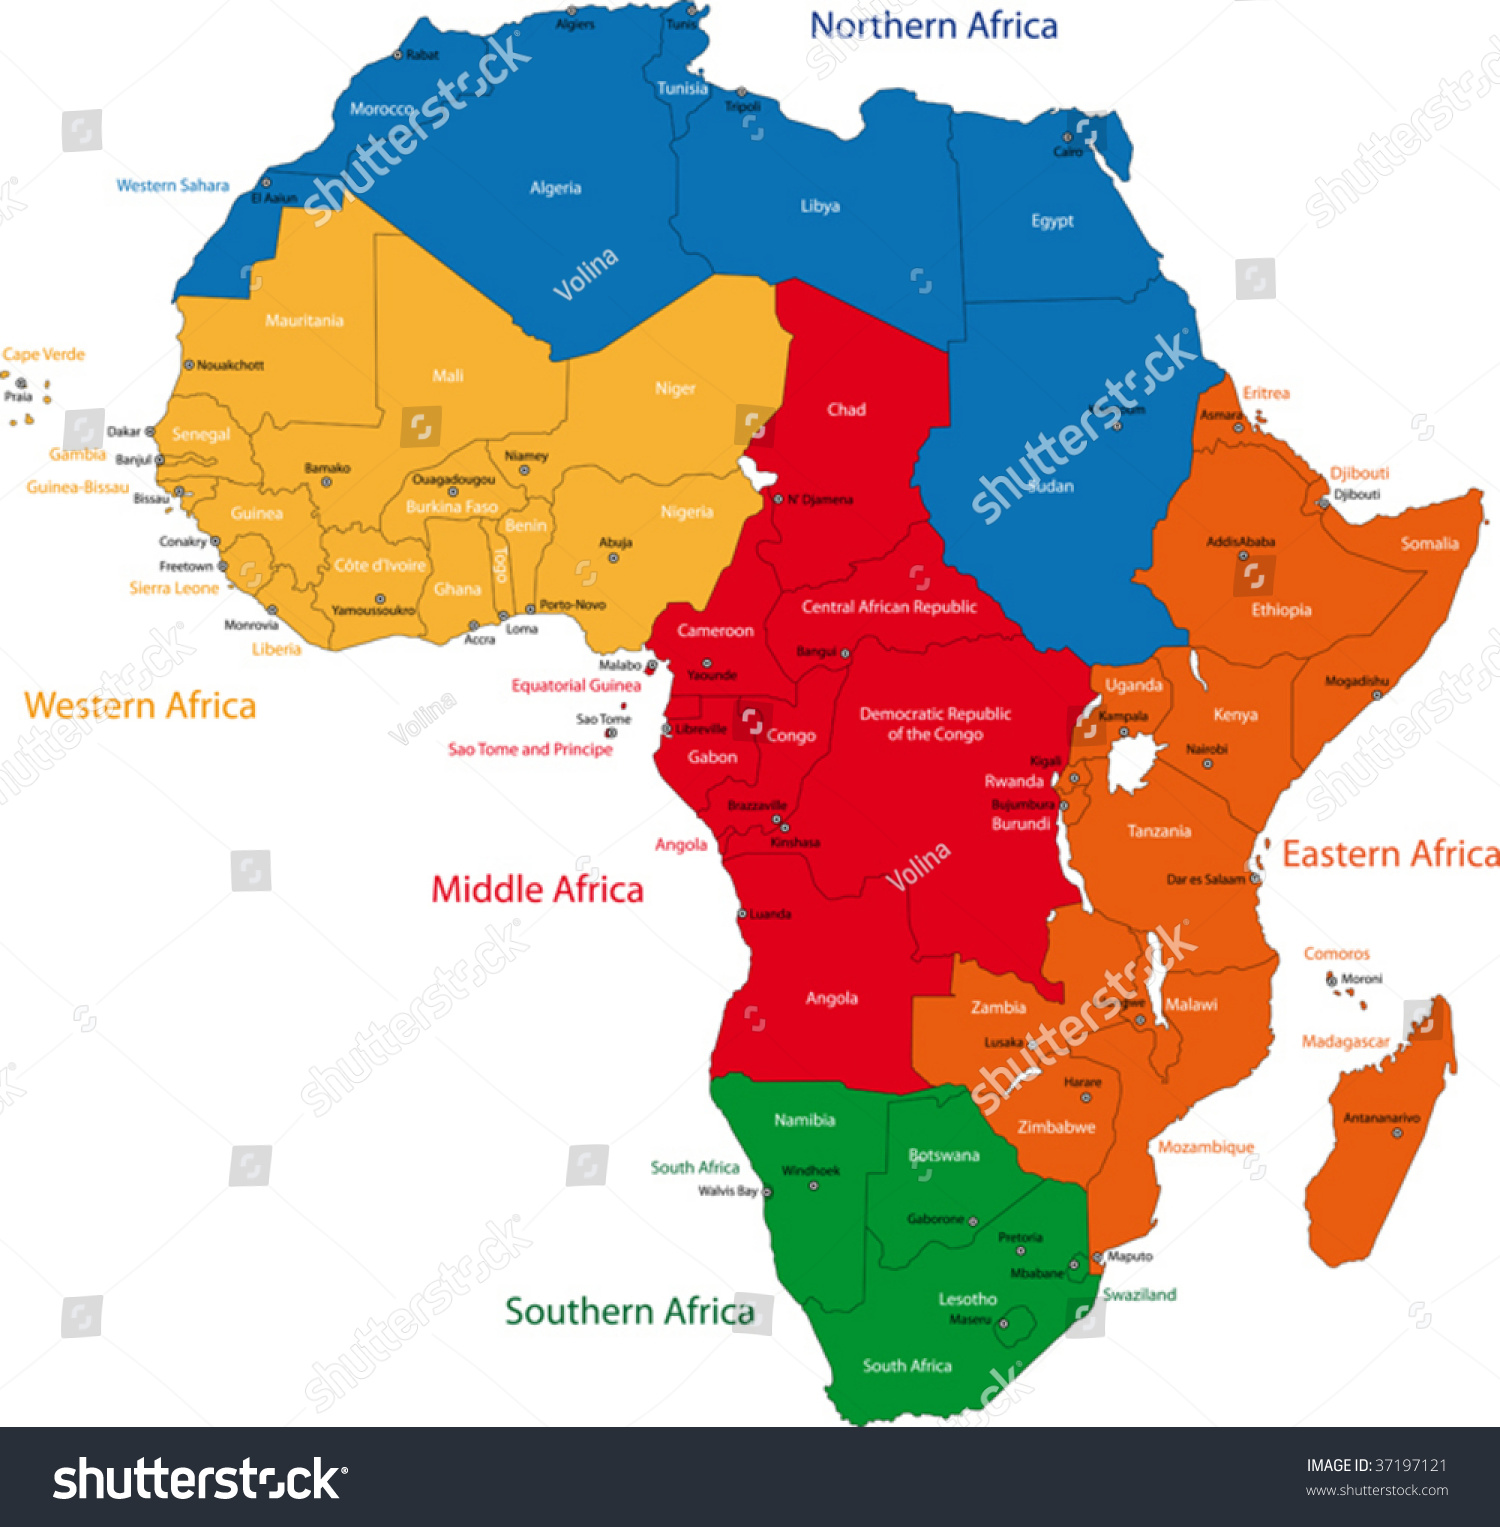 Colorful Regions Of Africa With Countries And Capital